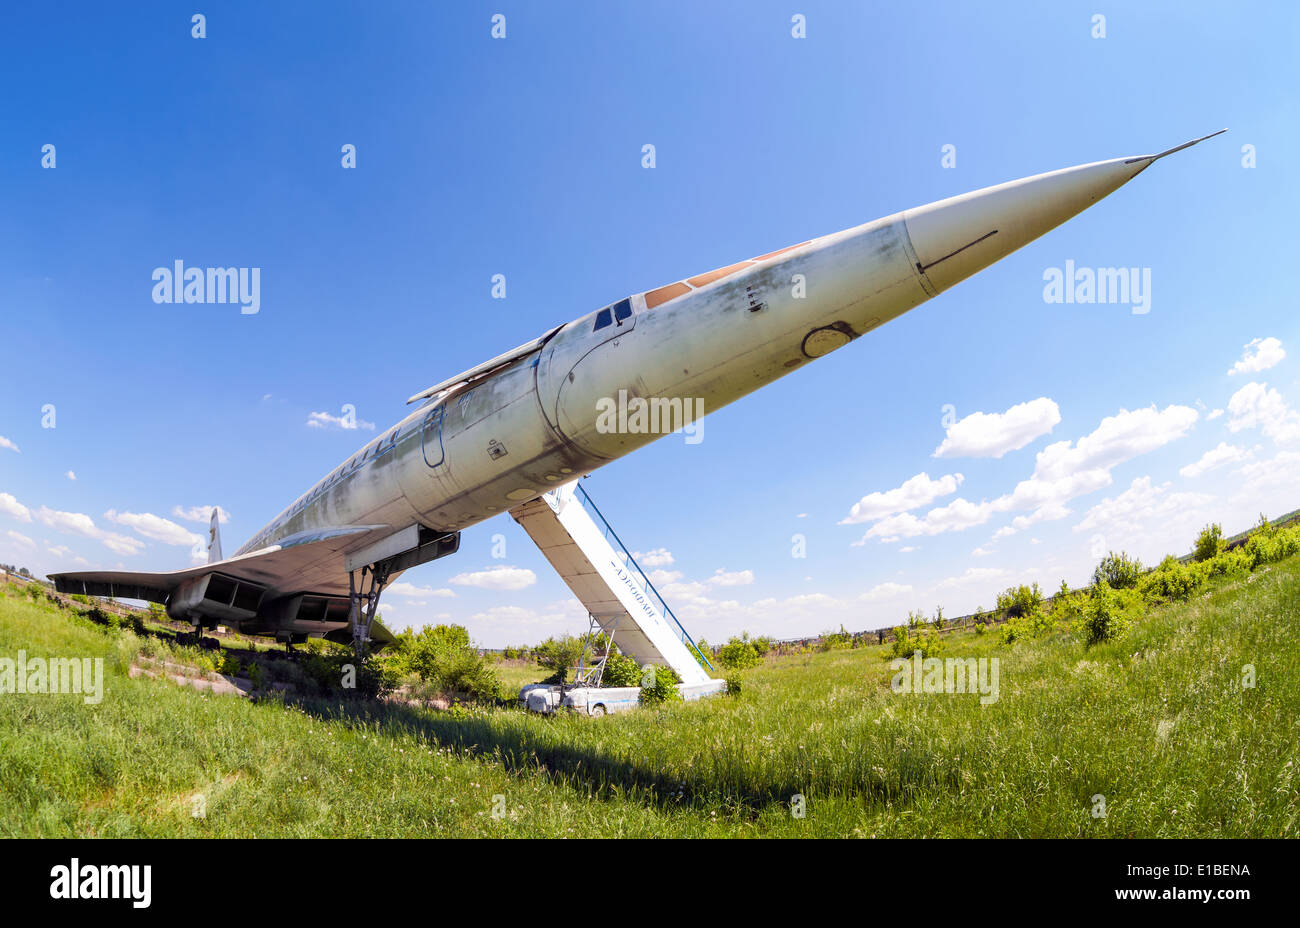 Tupolev Tu-144 plane was the first in the world commercial supersonic transport aircraft - Stock Image